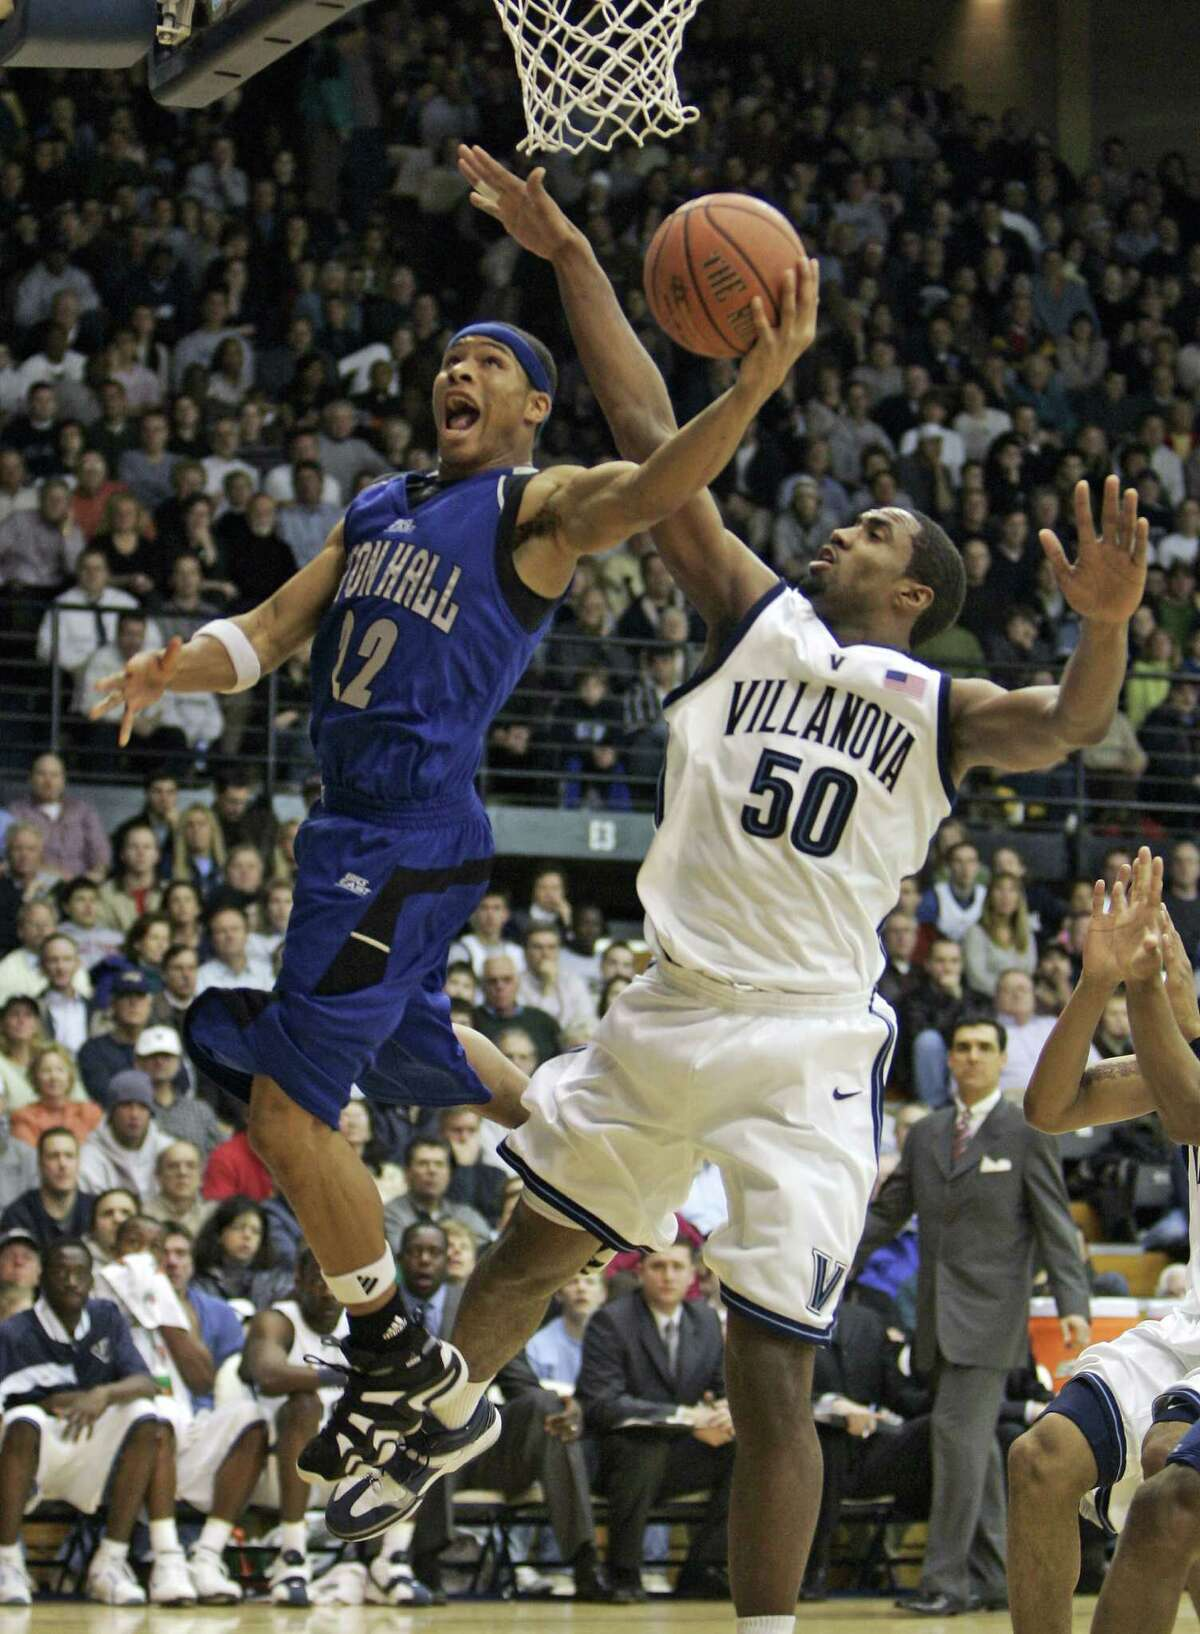 19. 19085: Located at Villanova, Penn., this ZIP code is home to 1,571 families where the median family income is $209,306. The city is probably best known for its college basketball, pictured above.